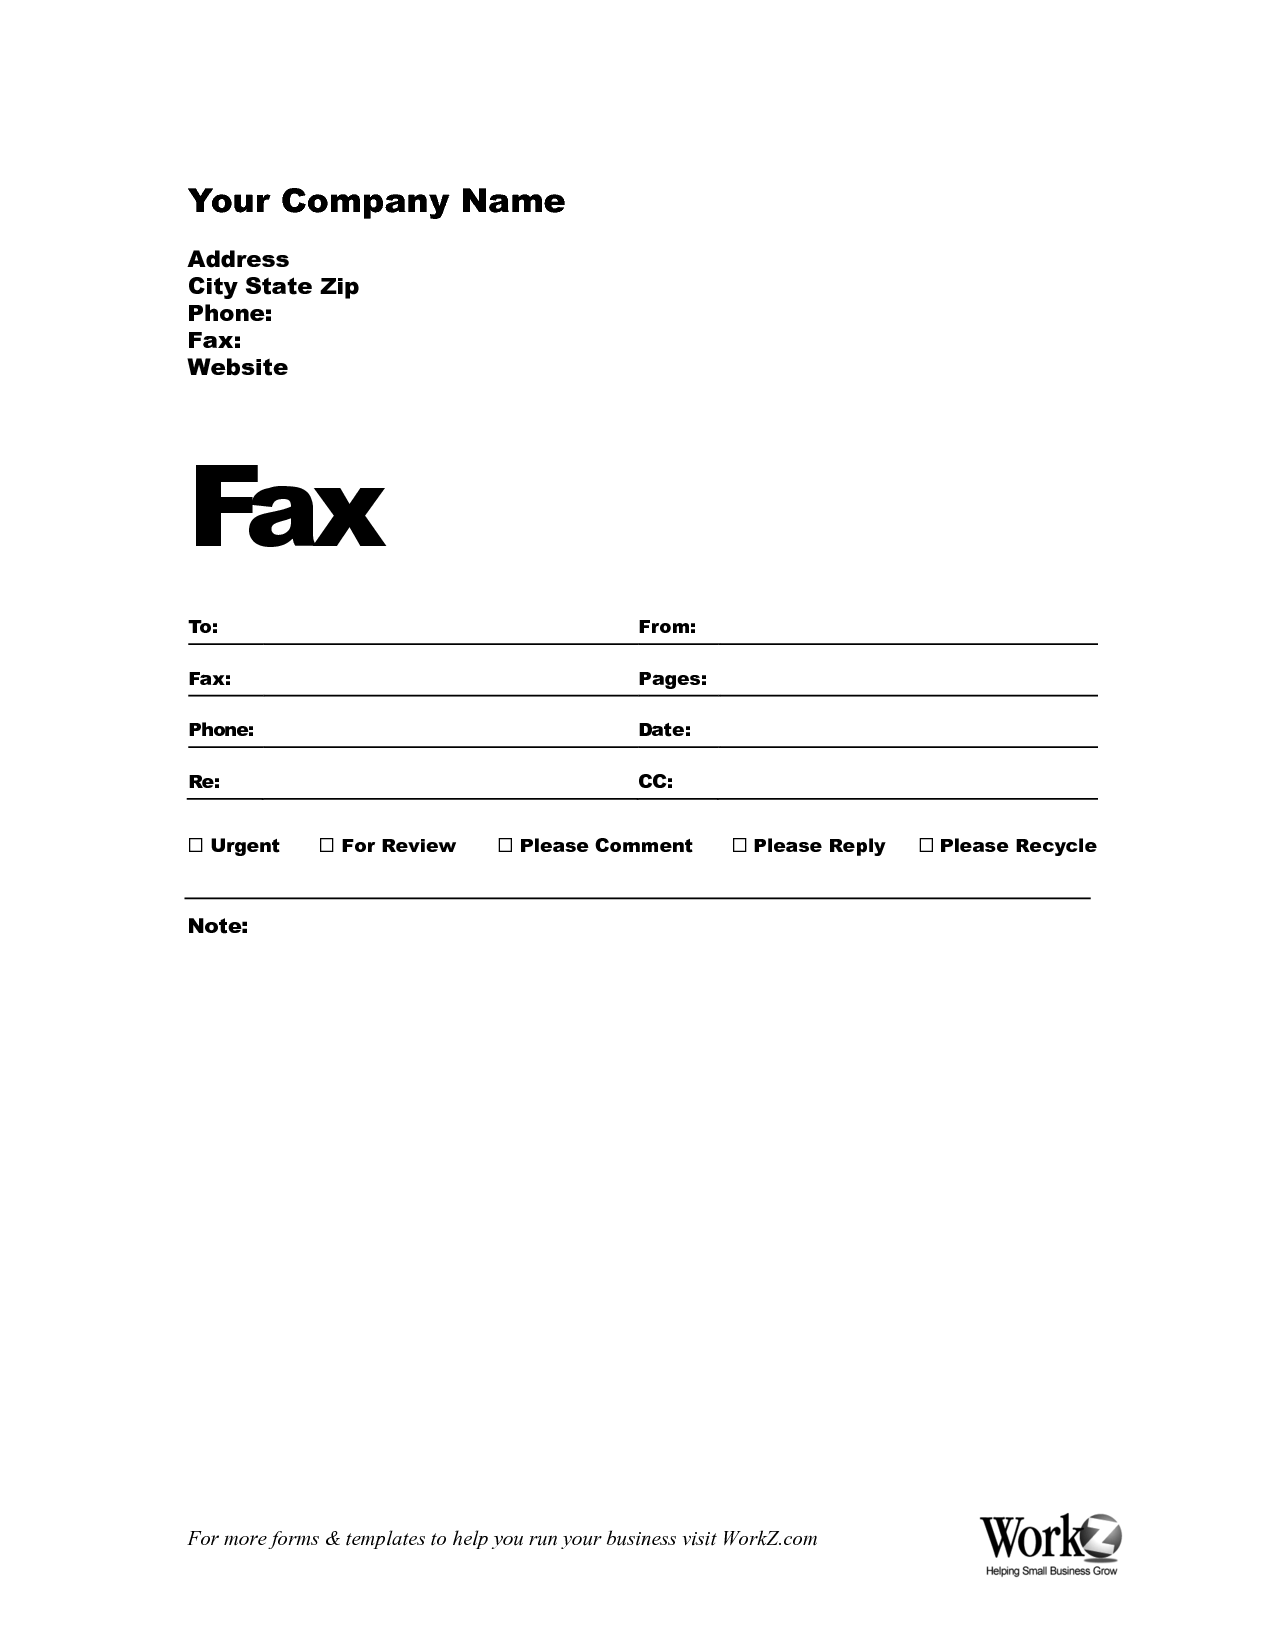 fax cover sheet sample template images  u0026 pictures